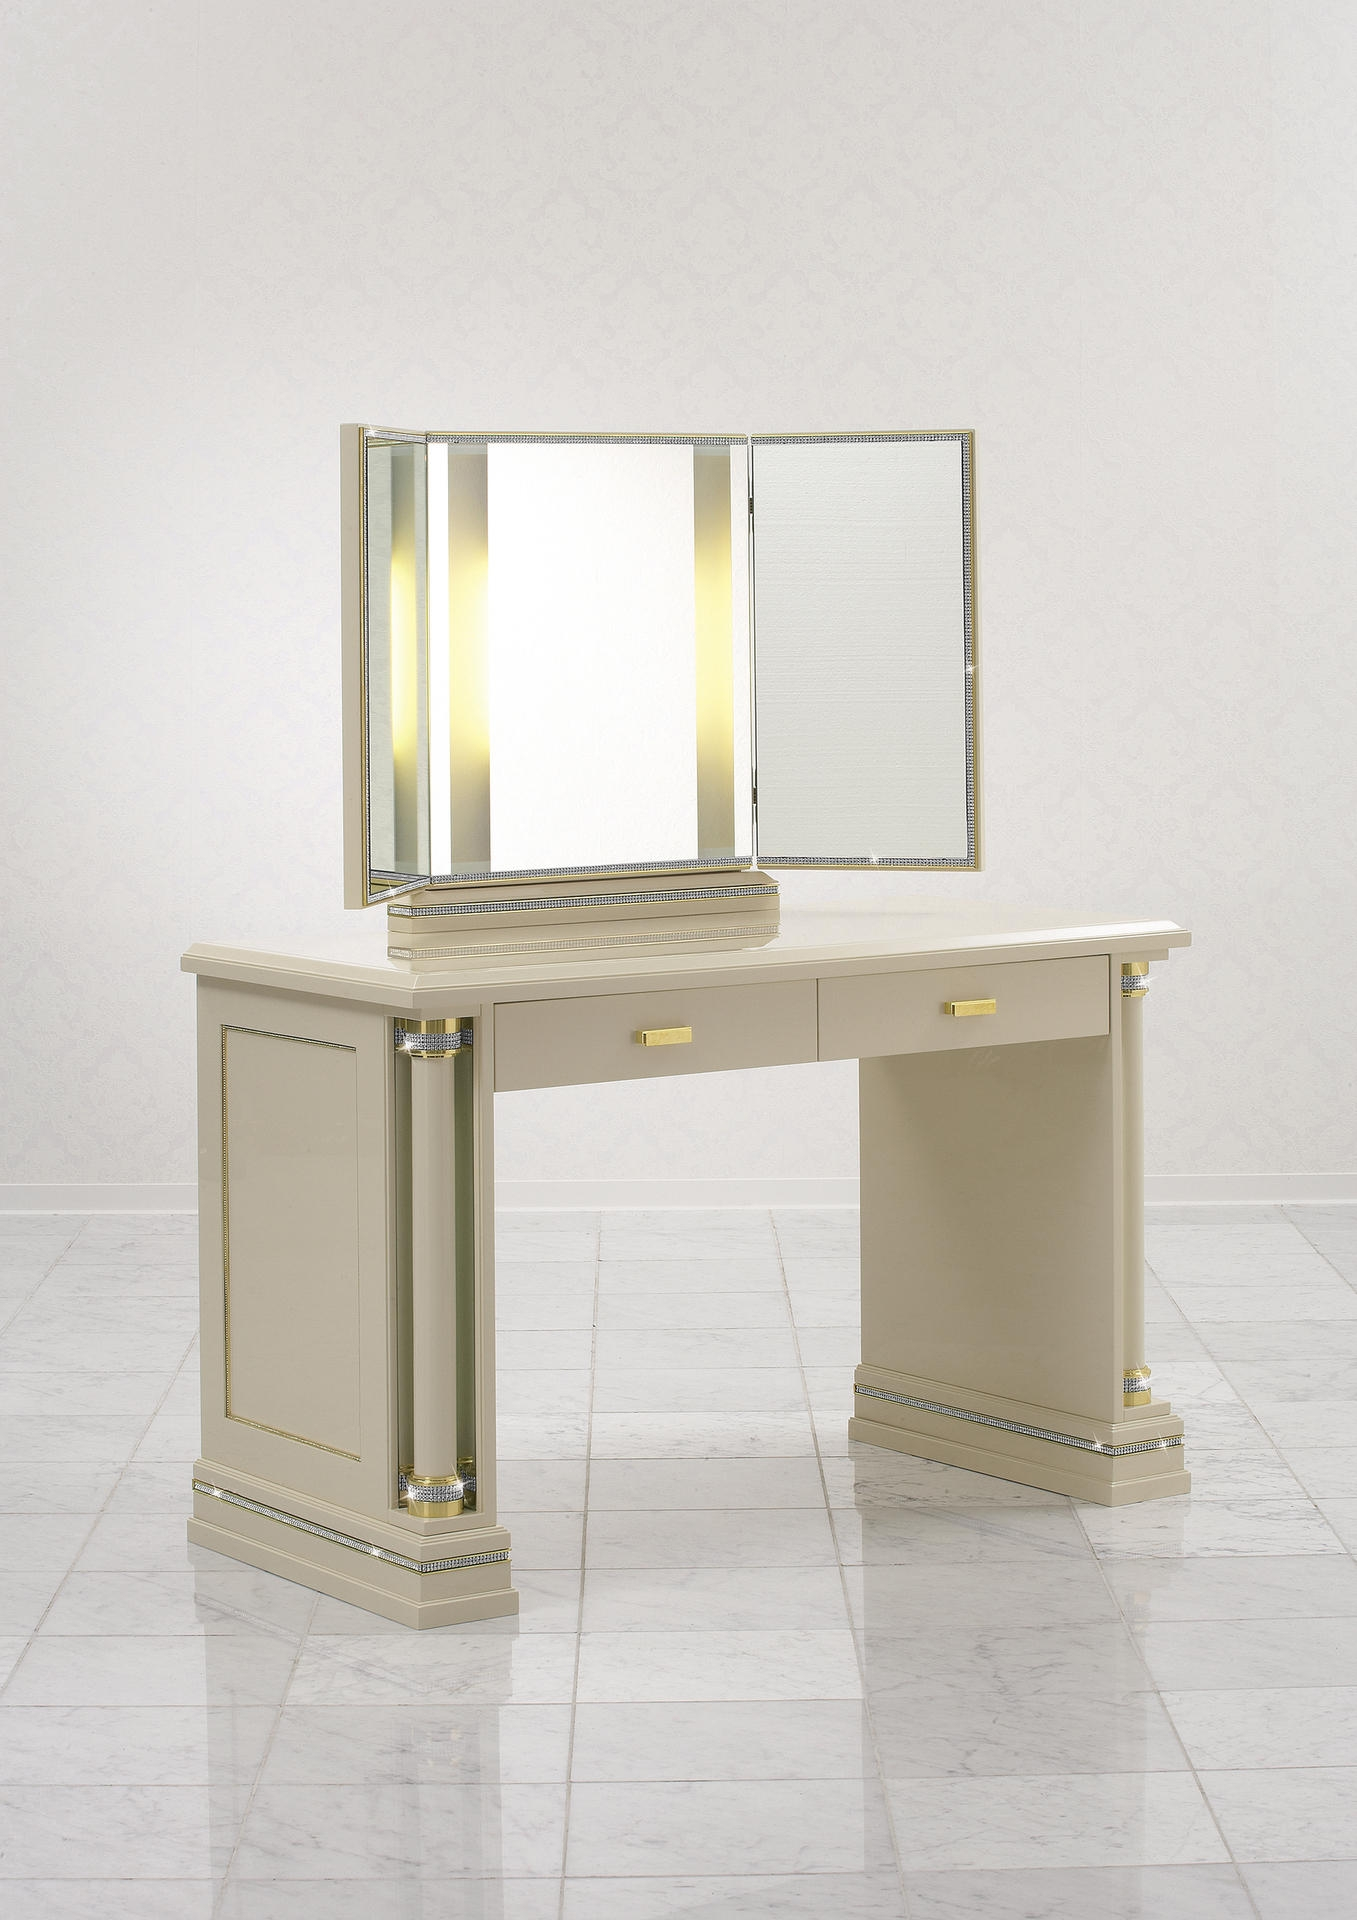 Furniture With Swarovski Crystals Piato Finkeldei Throughout Illuminated Dressing Table Mirrors (Image 11 of 15)